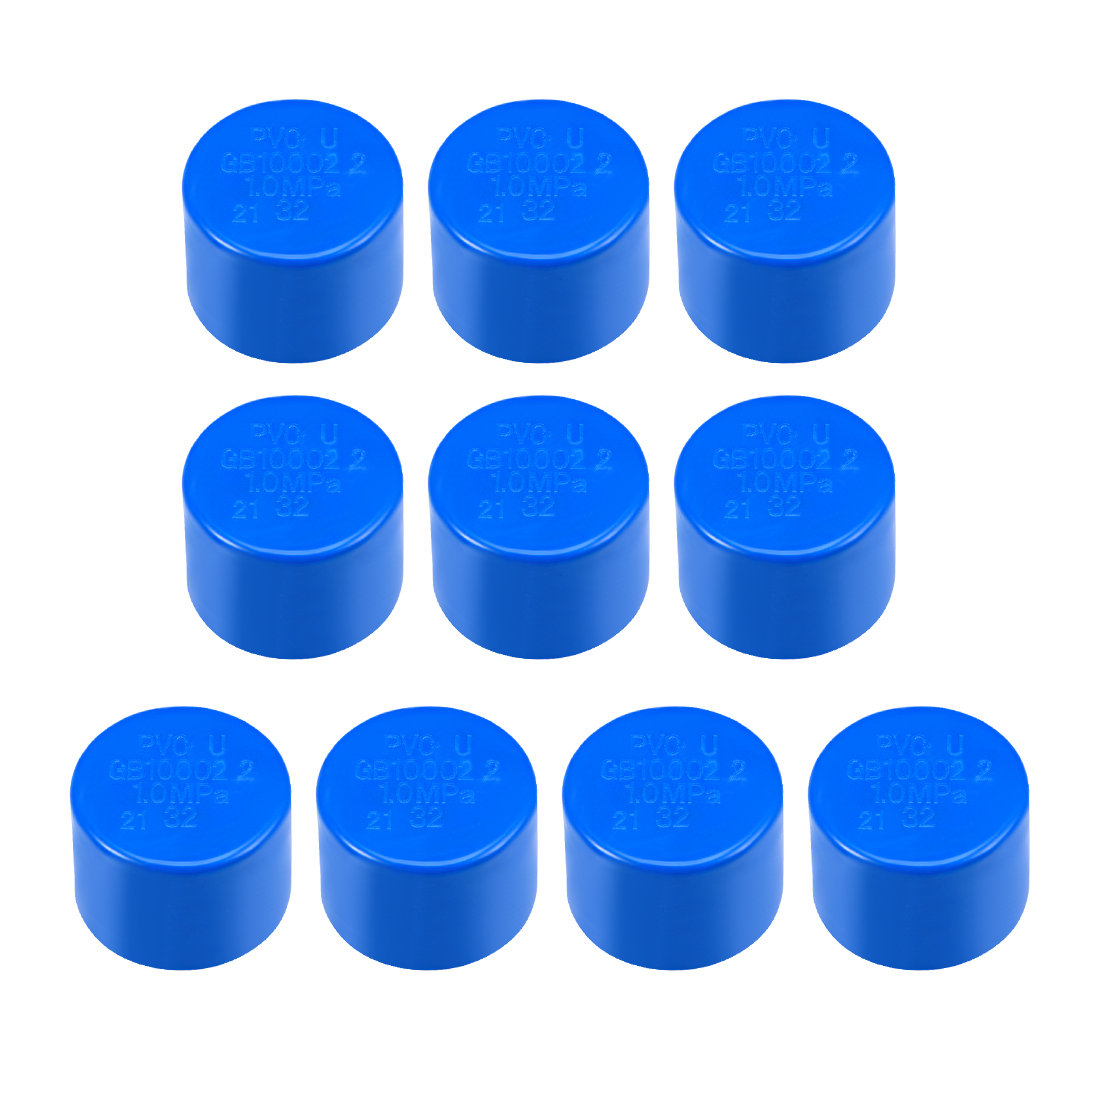 32mm PVC Pipe Cap Fitting, Slip End Caps DWV(Drain Waste Vent) Blue 10Pcs